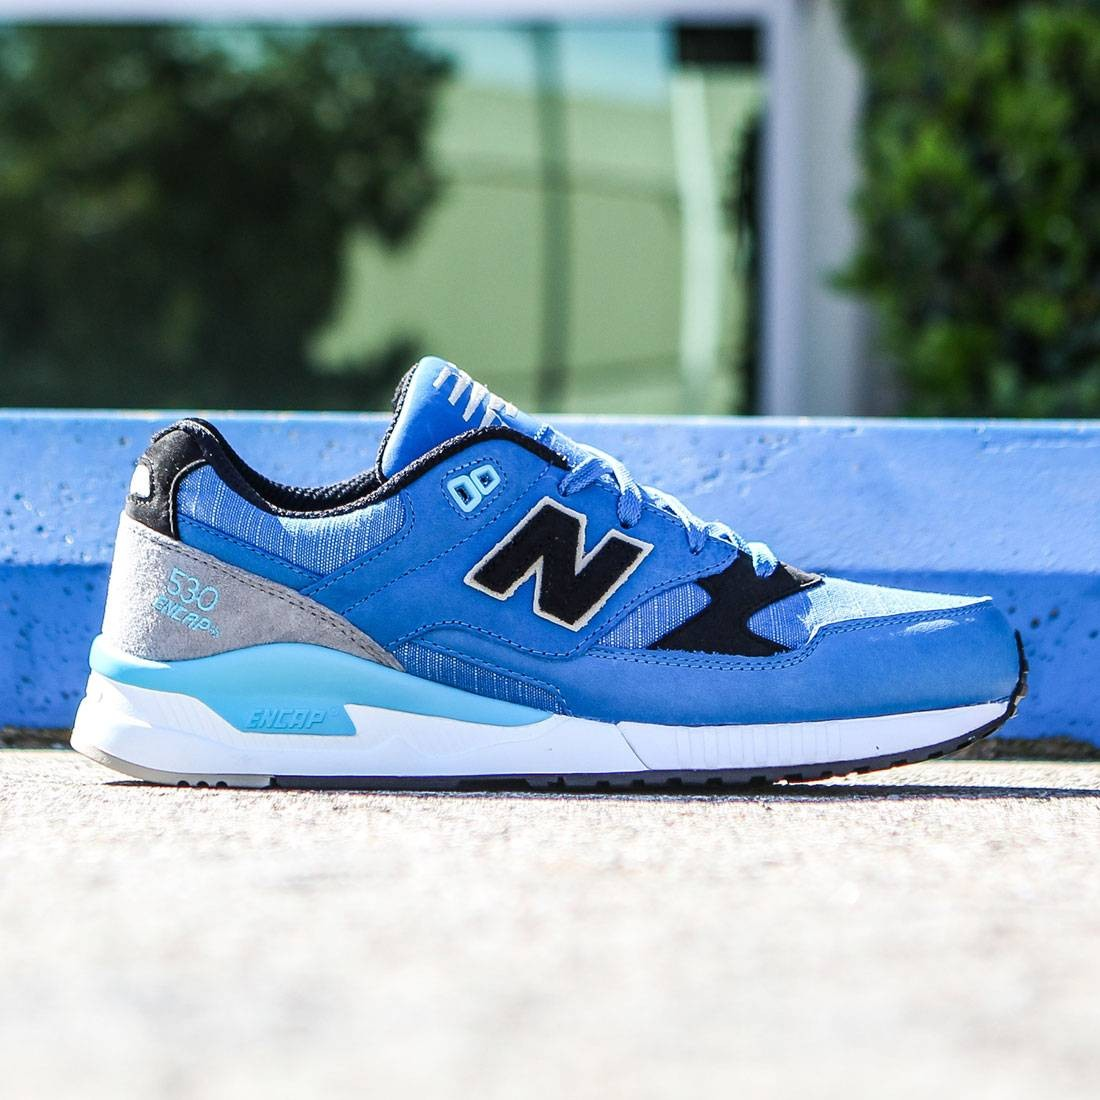 New Balance Men 530 Elite Edition Lost Worlds M530LW (blue / grey)